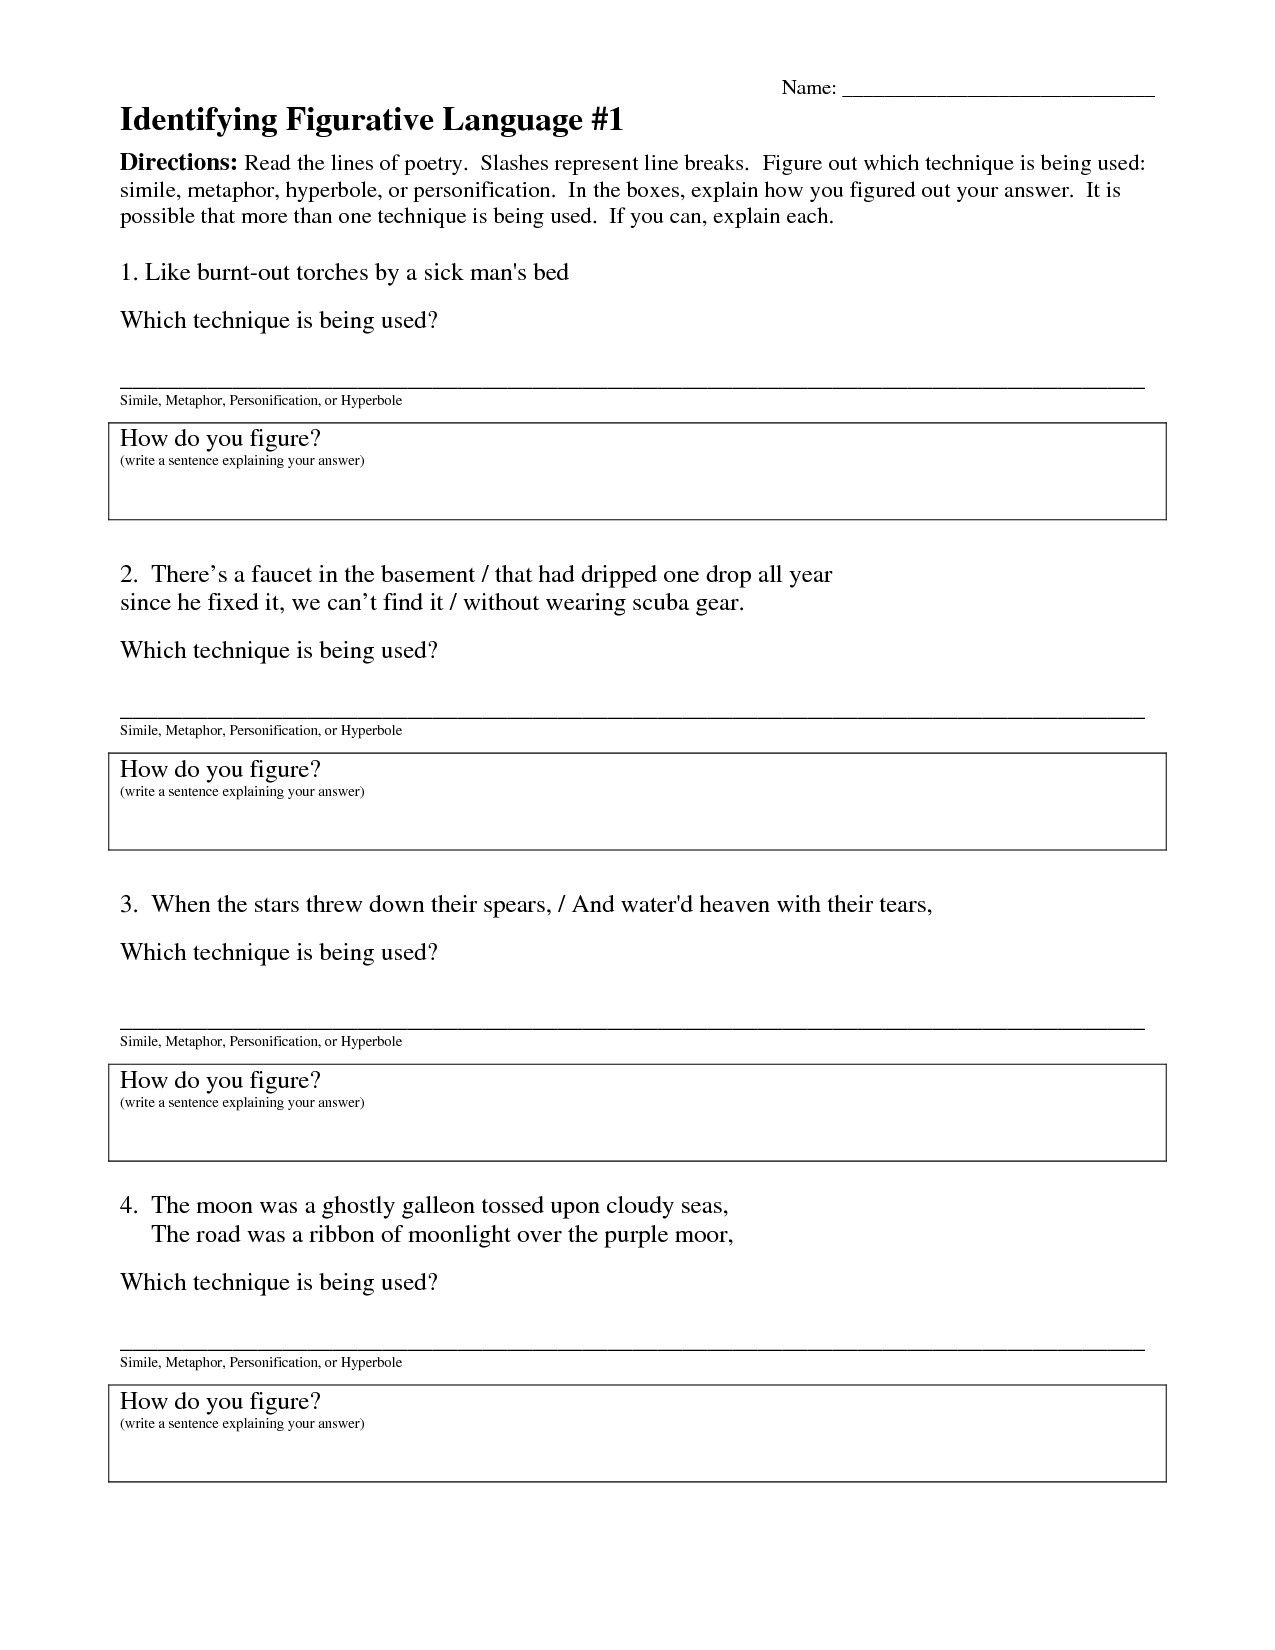 Figurative Language Worksheet Middle School In